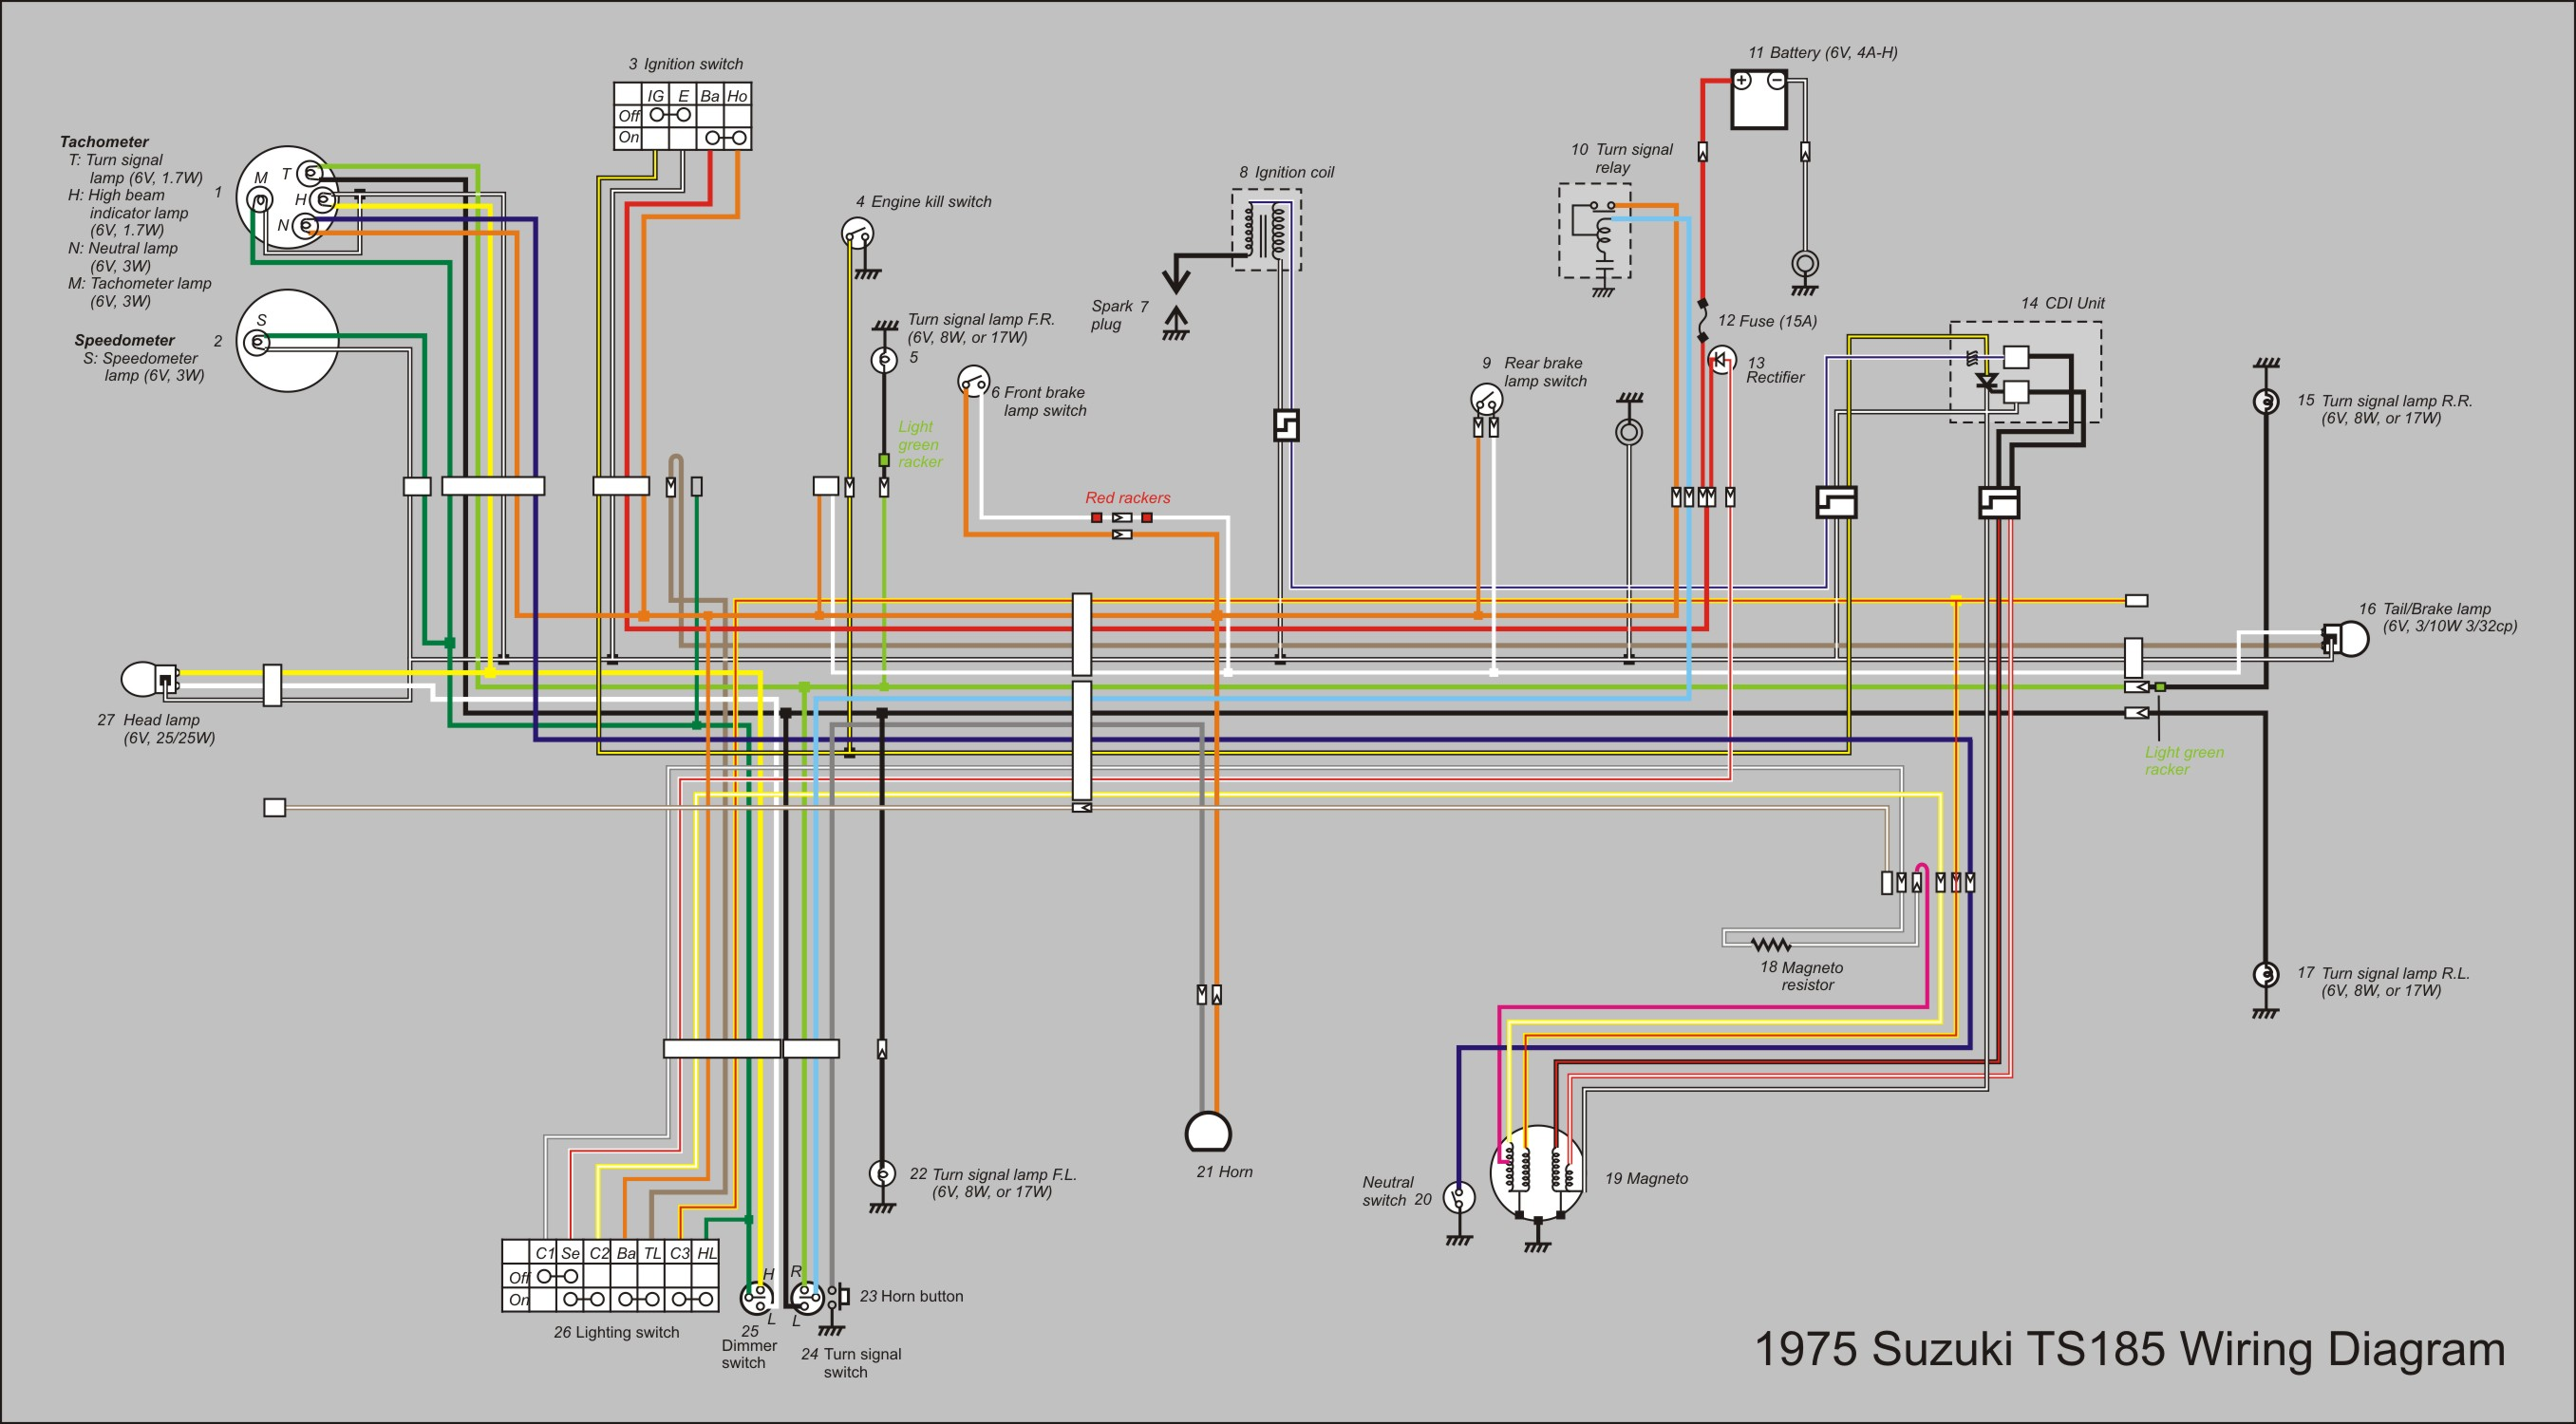 TS185_Wiring_Diagram_new file ts185 wiring diagram new jpg wikimedia commons find wiring diagram for 87 ford f 150 at gsmportal.co